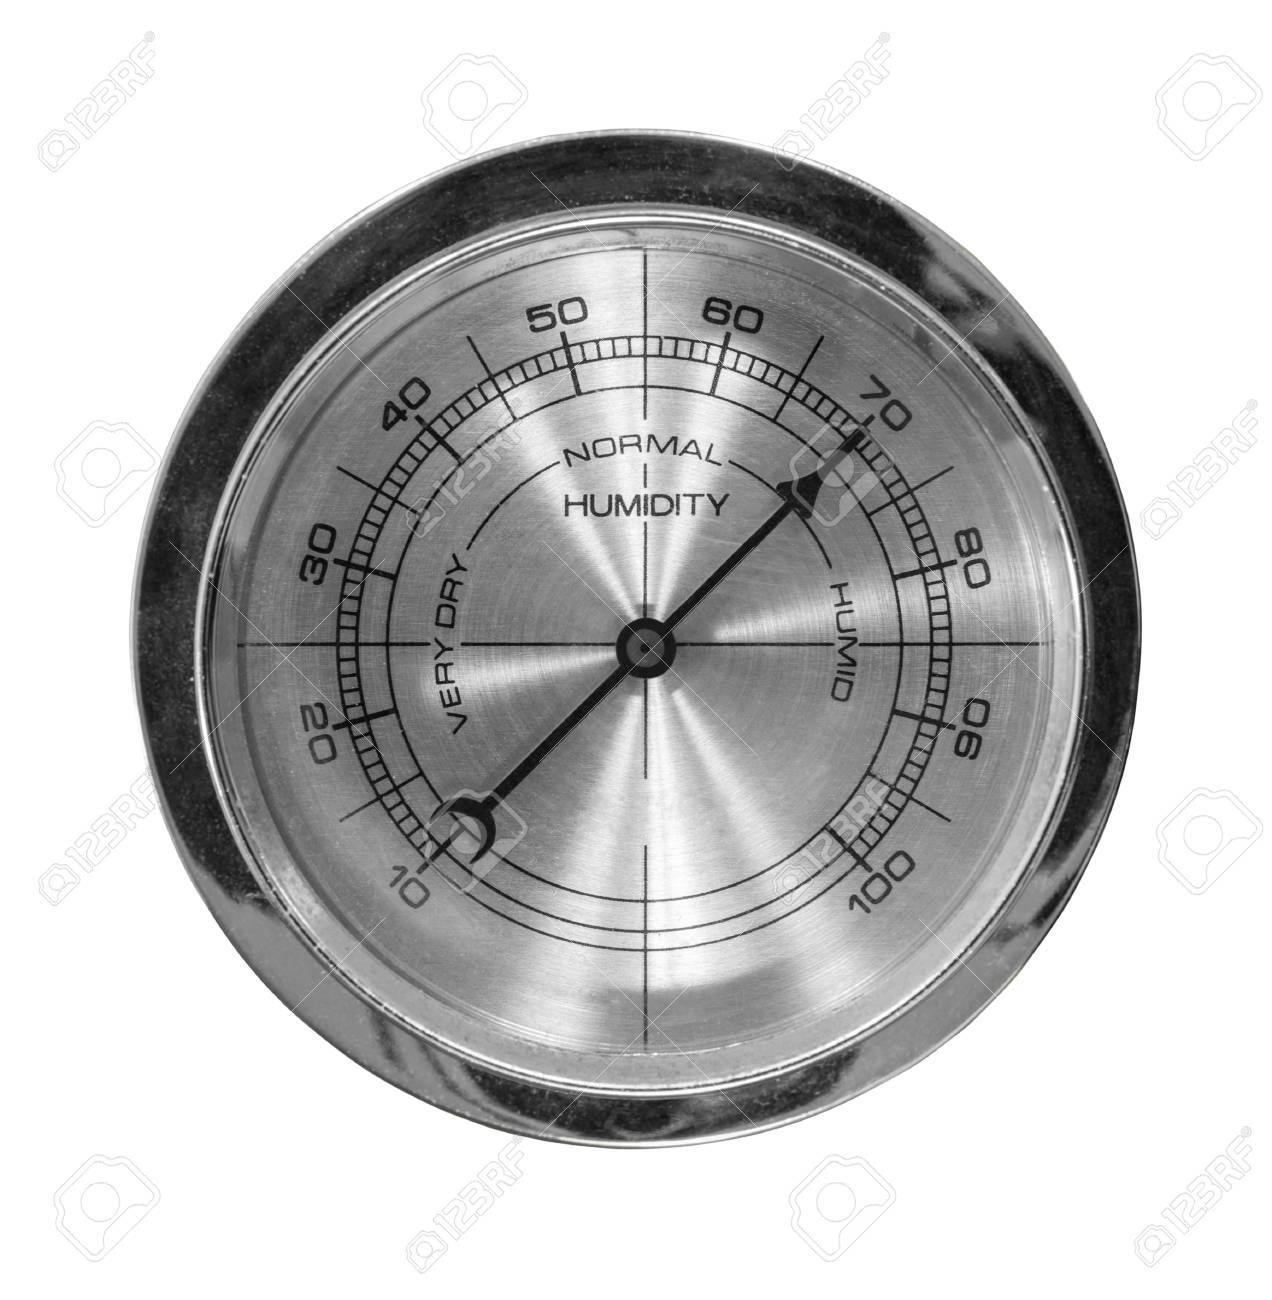 Humidity meter isolated with clipping path. Stock Photo - 22819542